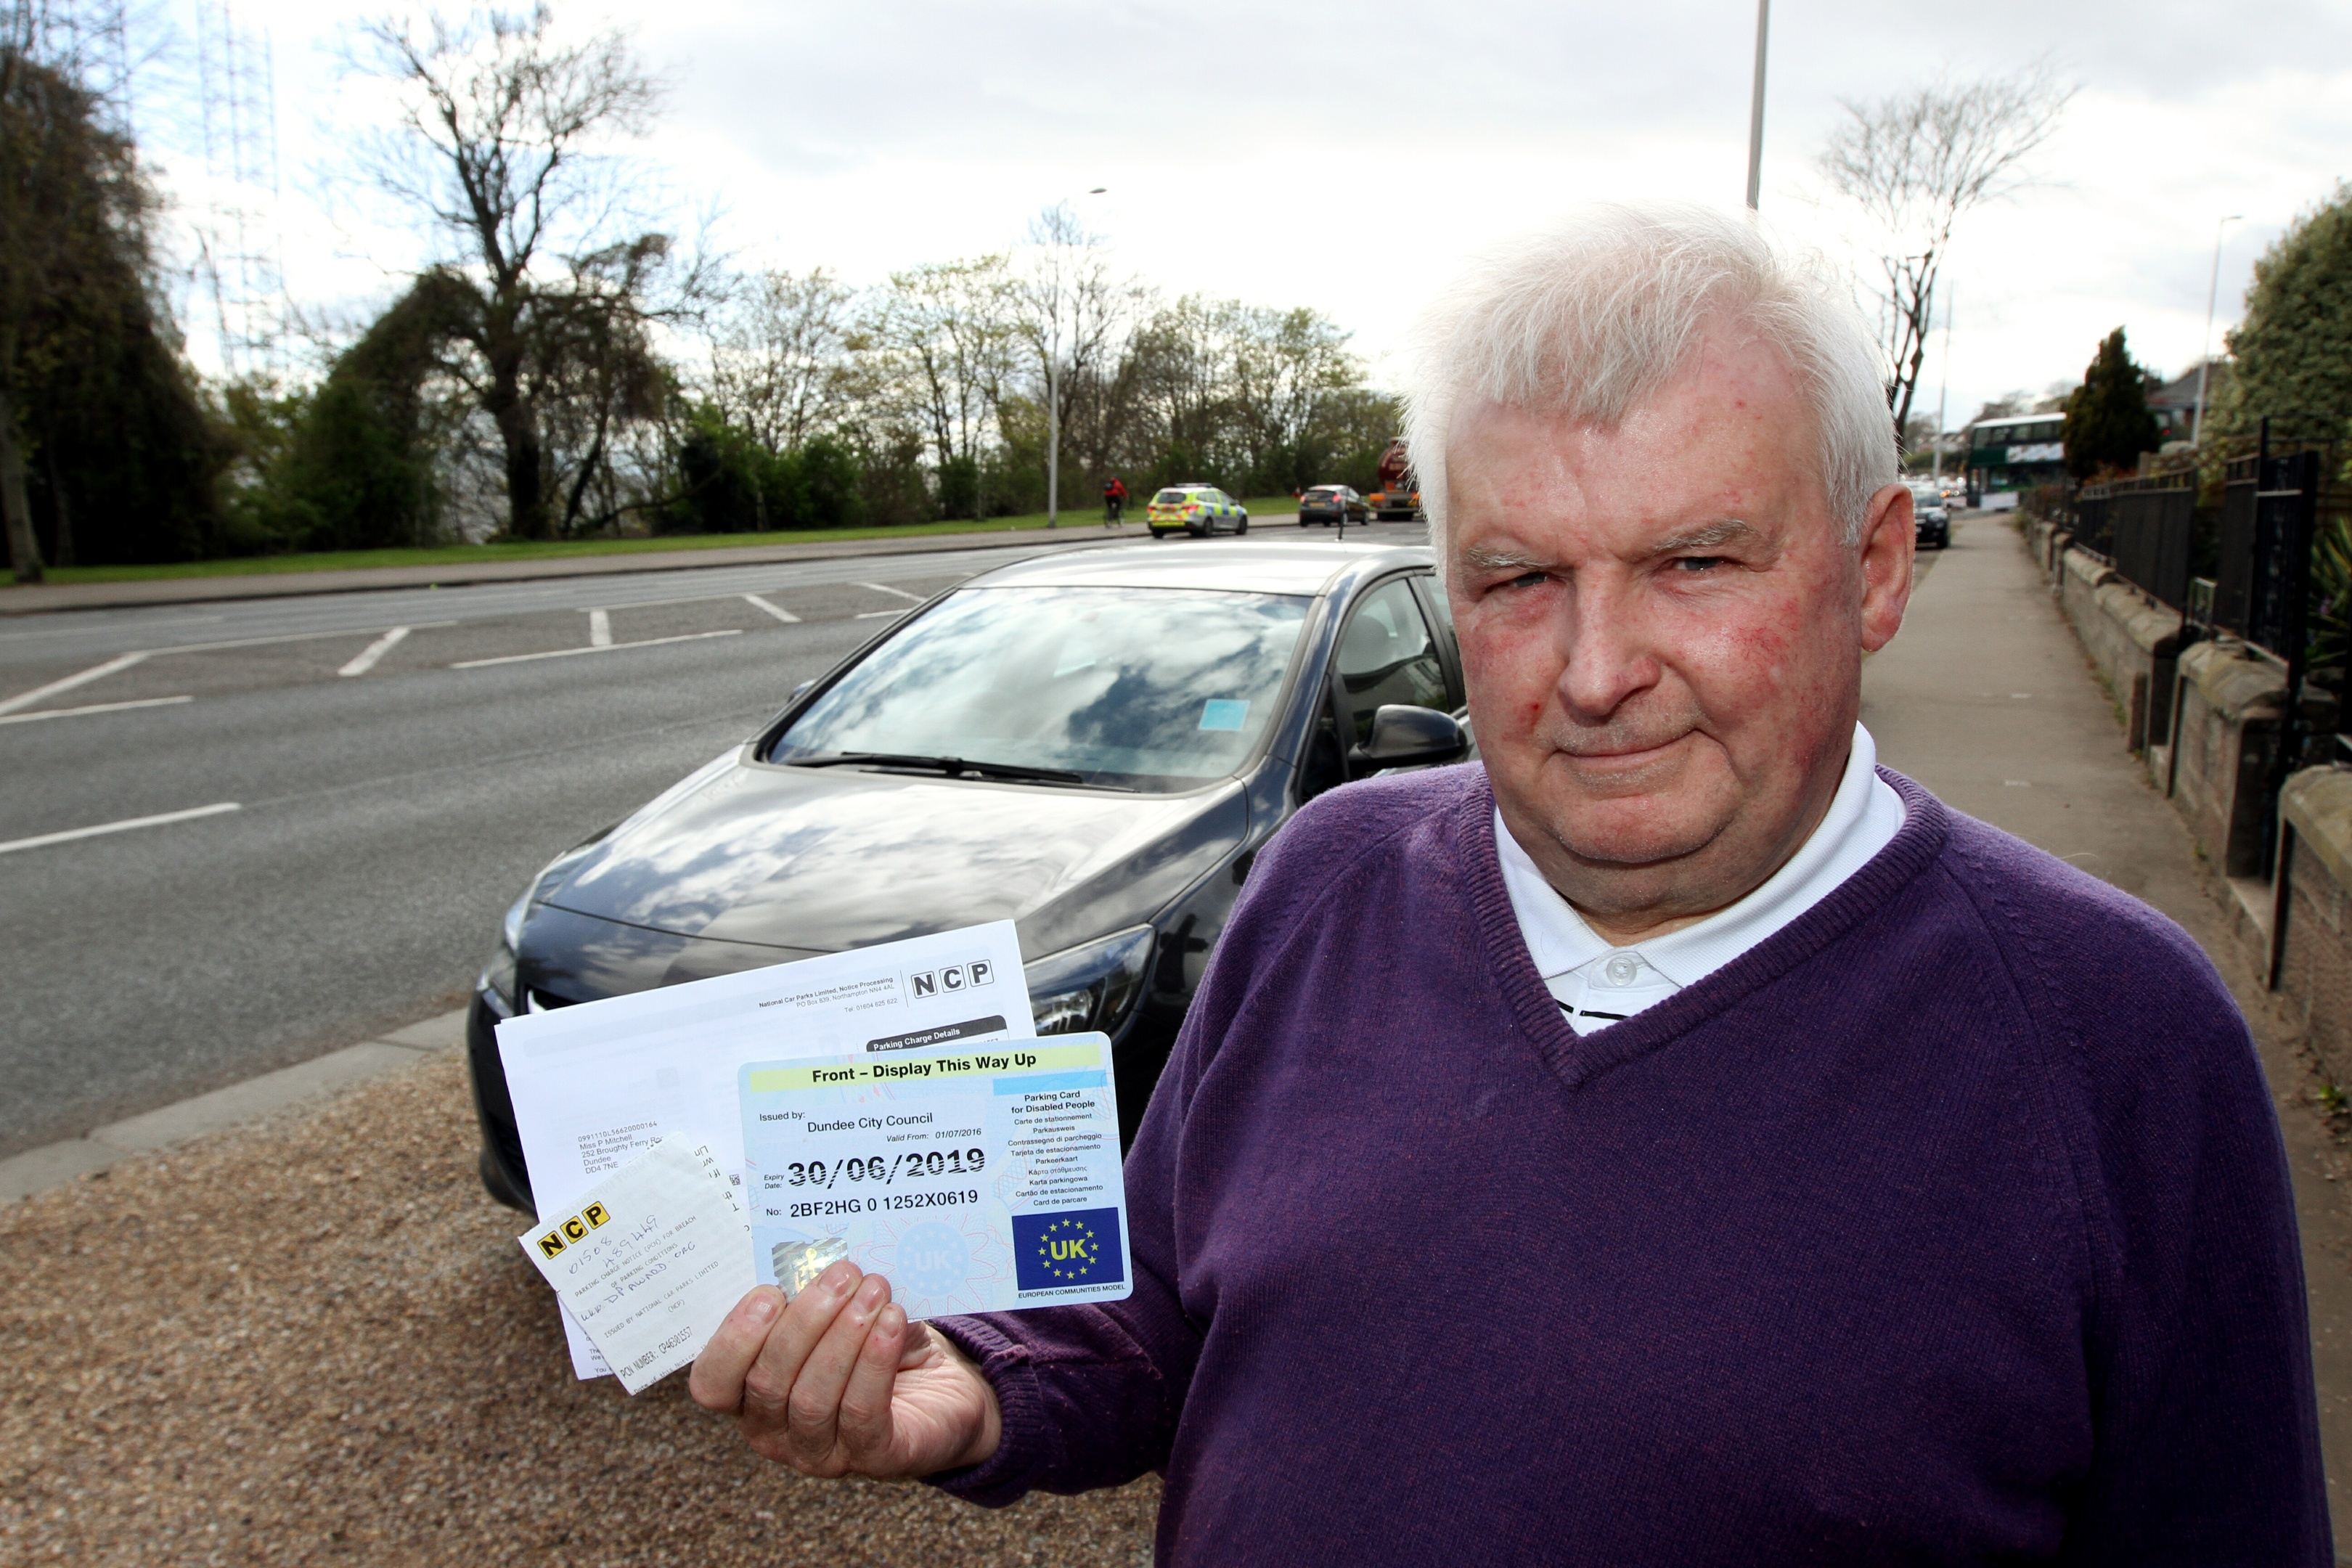 Blue Badge holder Mr Mitchell has been using the NCP car park for free for years.